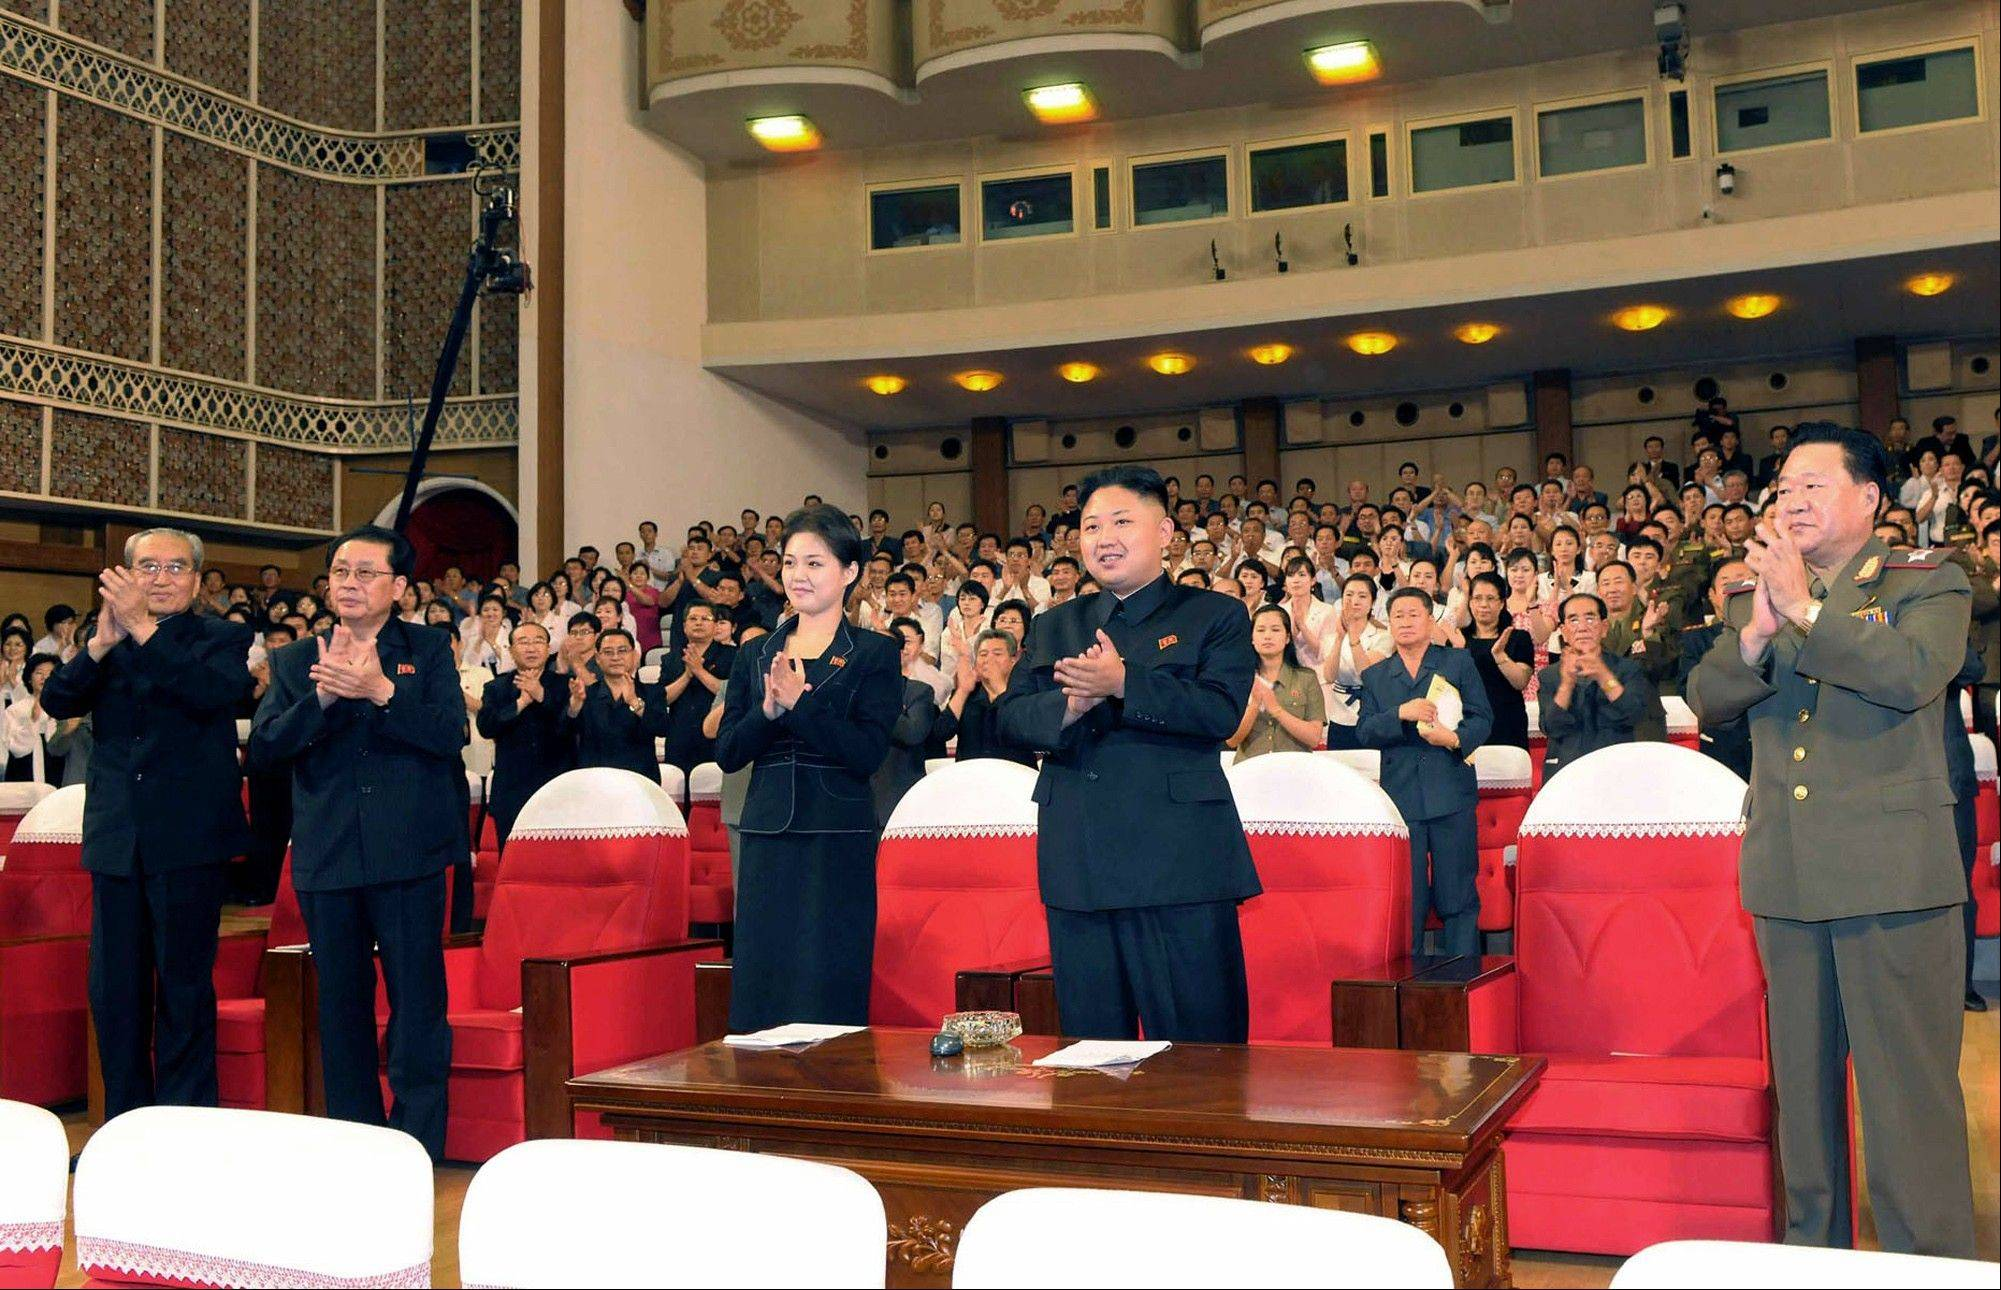 North Korean leader Kim Jong Un, center right, and a woman applaud with others as they watch a performance by North Korea�s new Moranbong band in Pyongyang Friday. The source did not identify the woman but South Korean media speculated she could be Kim�s younger sister or wife.